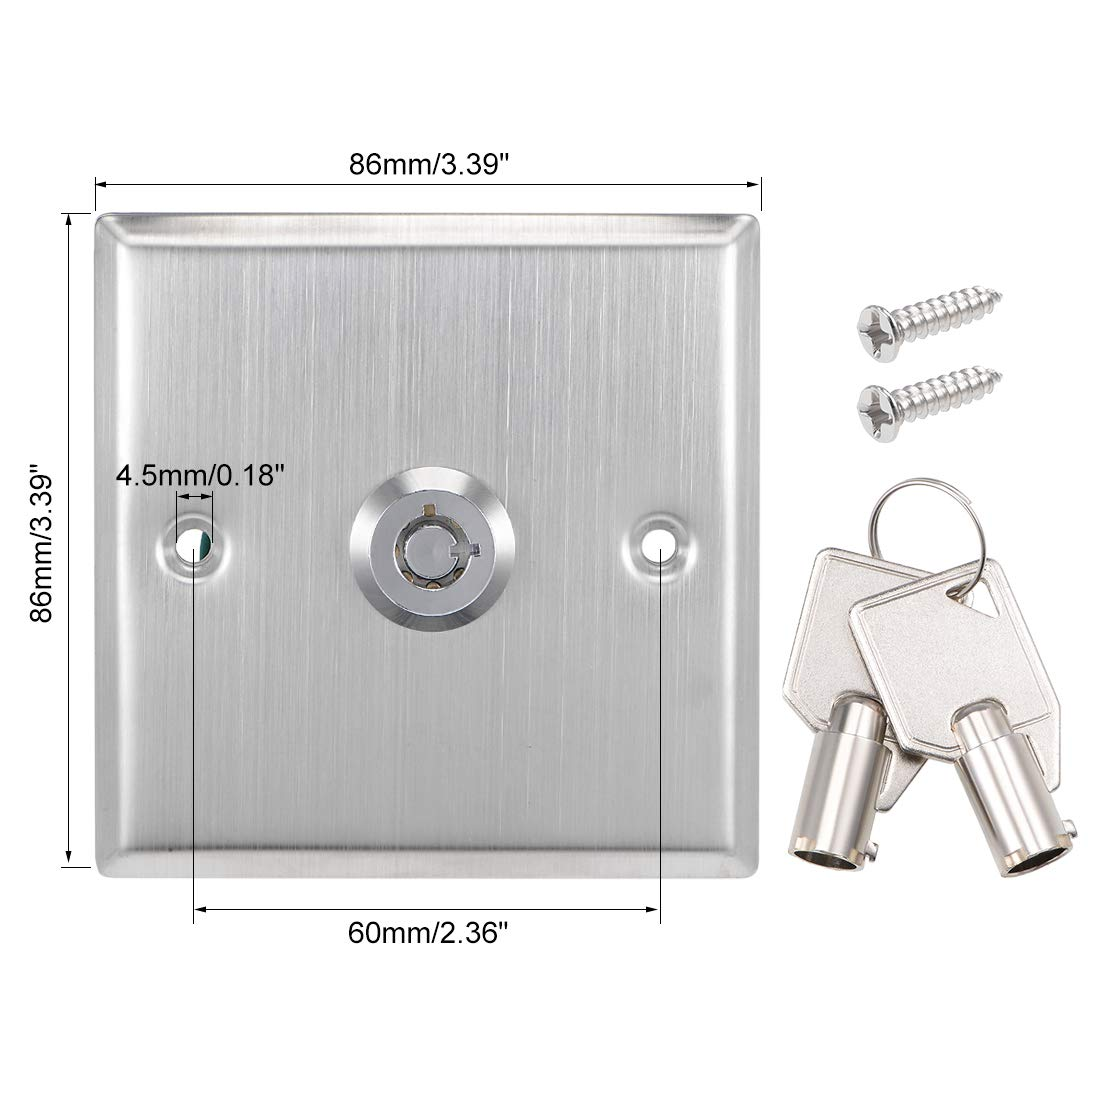 uxcell On//Off Switch Lock Key Switches Emergency Door Release SPST for Access Control Panel Mount with 2 Keys